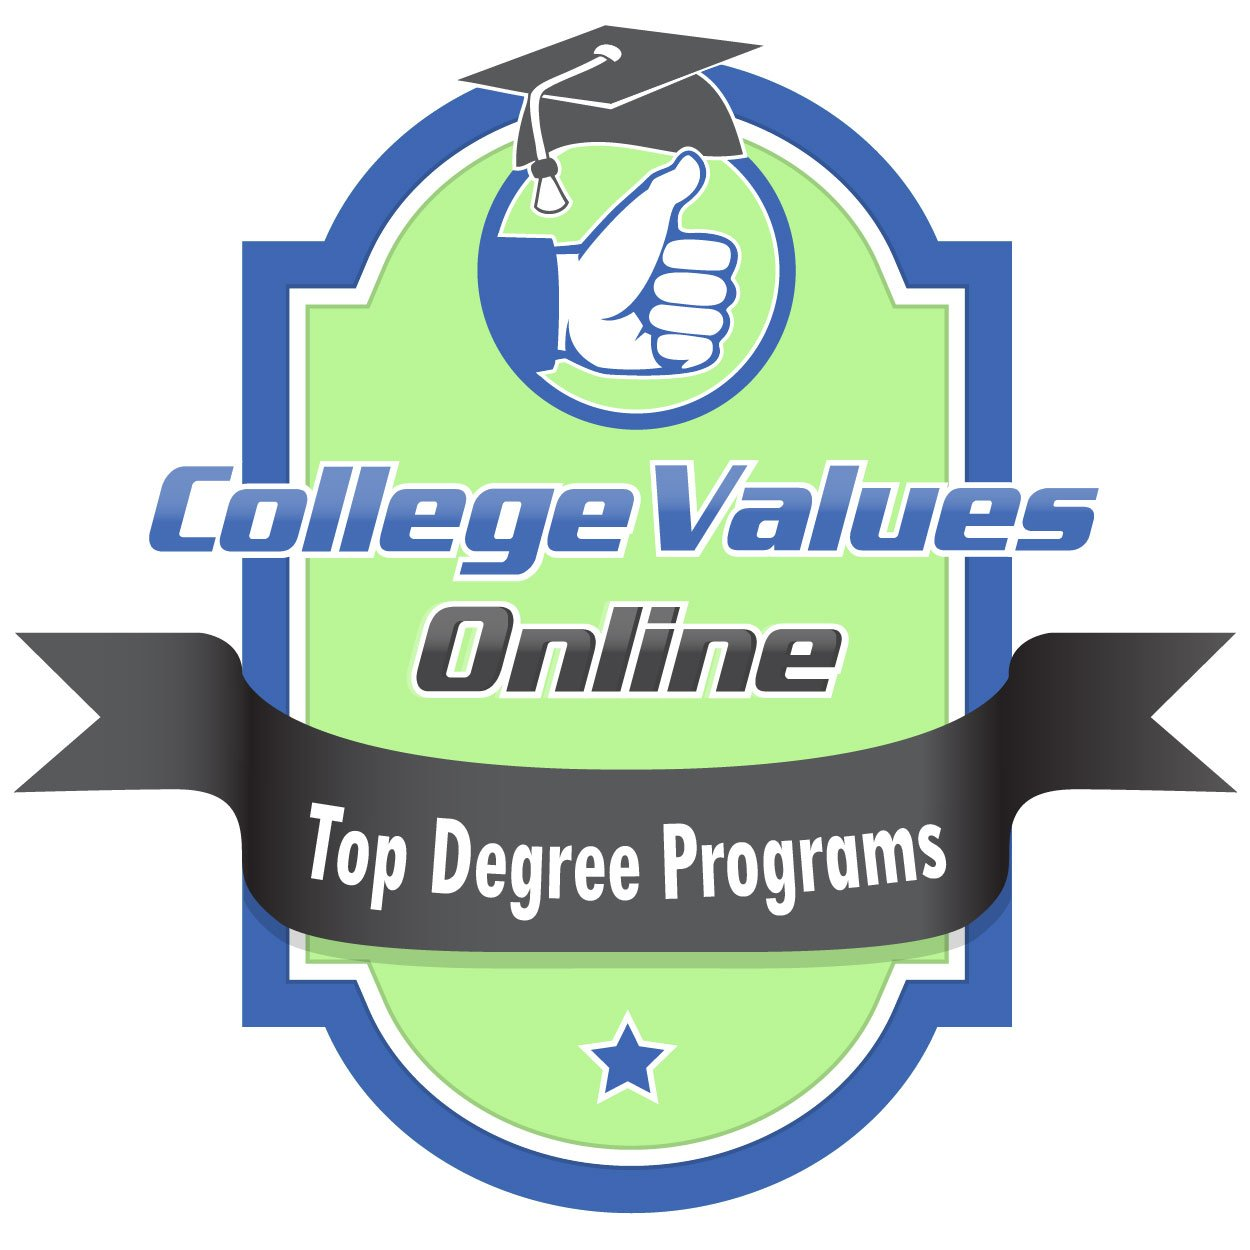 Photo in computer science bachelor online accredited florida